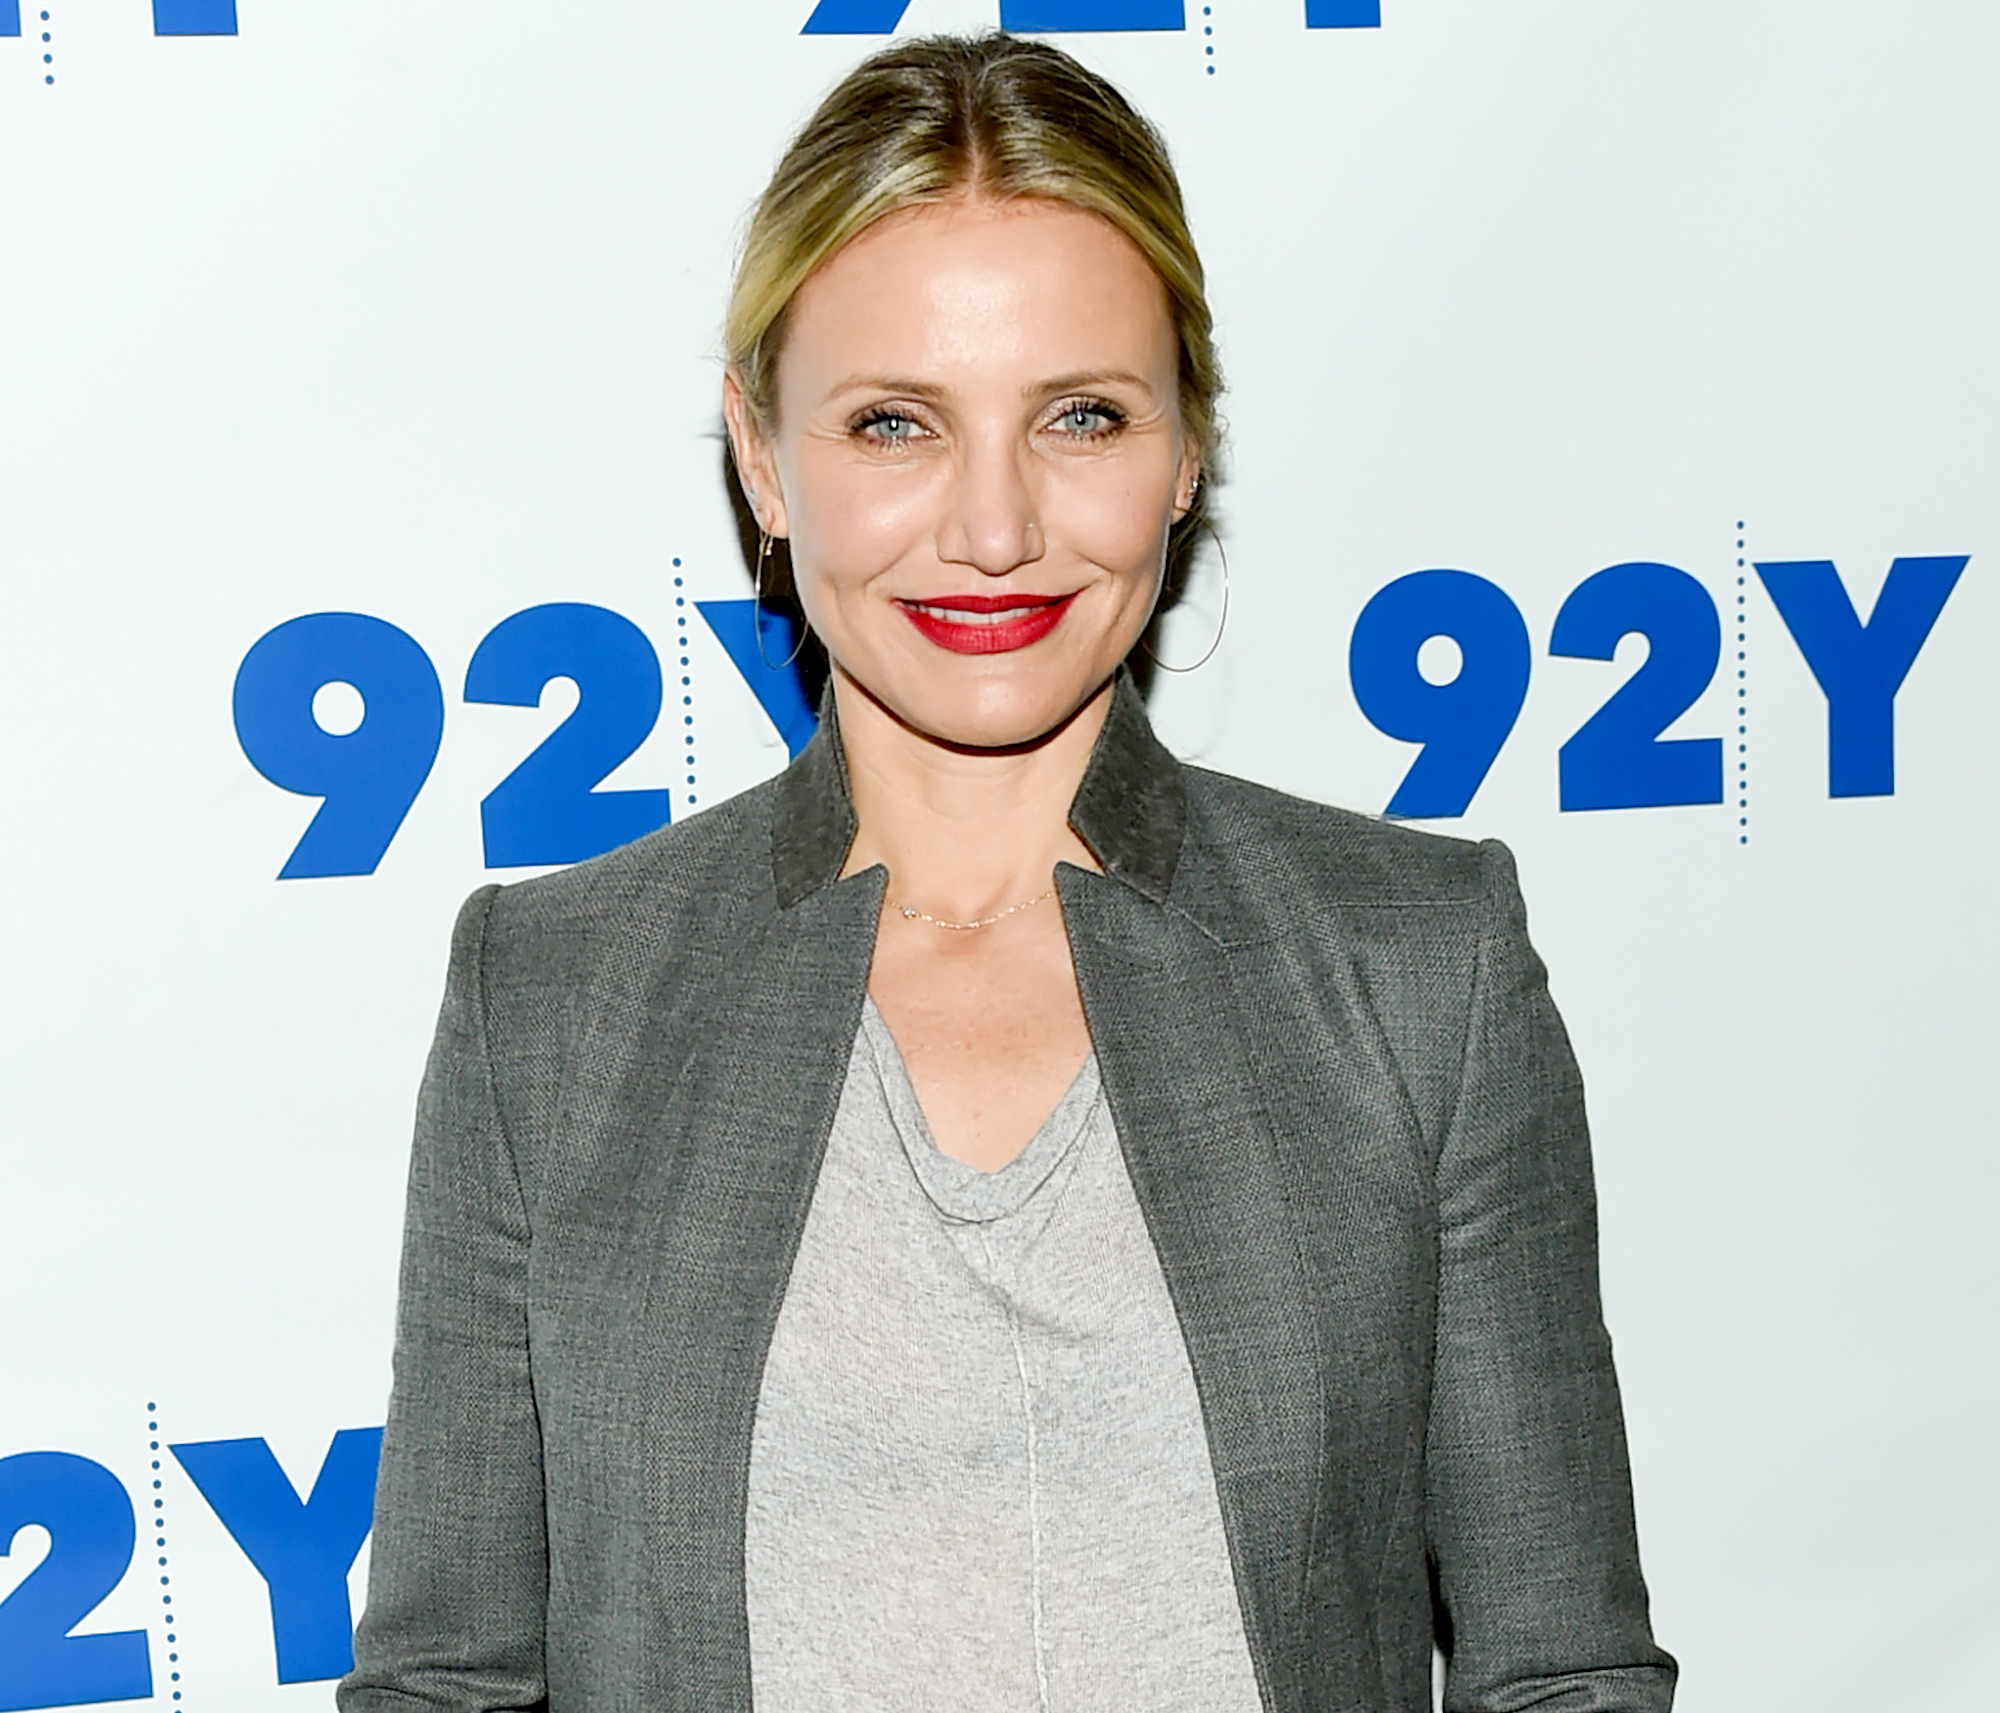 Cameron Diaz Reveals Whether She Plans to Make More Movies 2 Years After Announcing Retirement